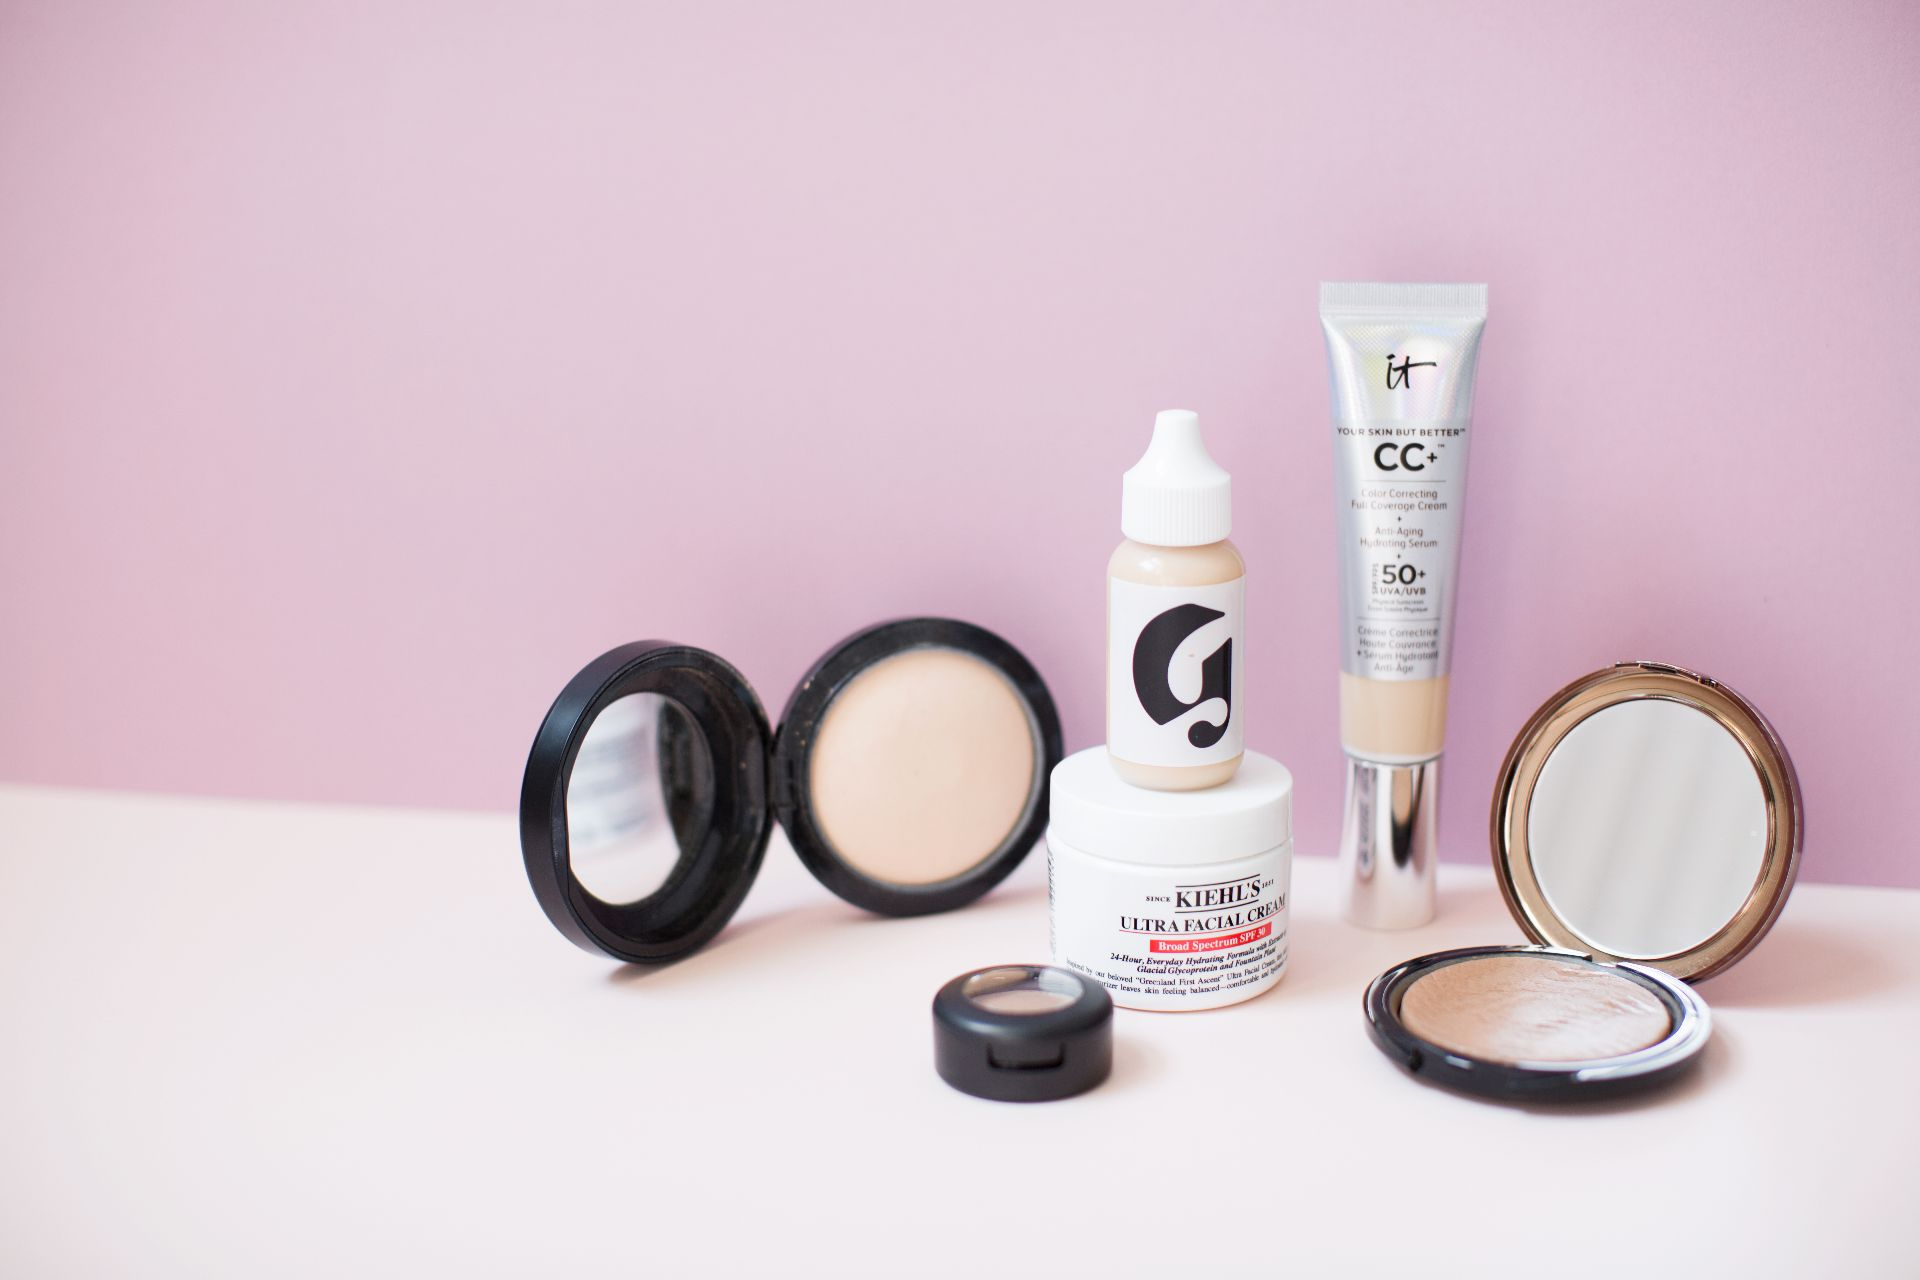 theannaedit-sumer-makeup-favourites-glossier-stella-mccartney-urban-decay-sweatproof-june-2017-8